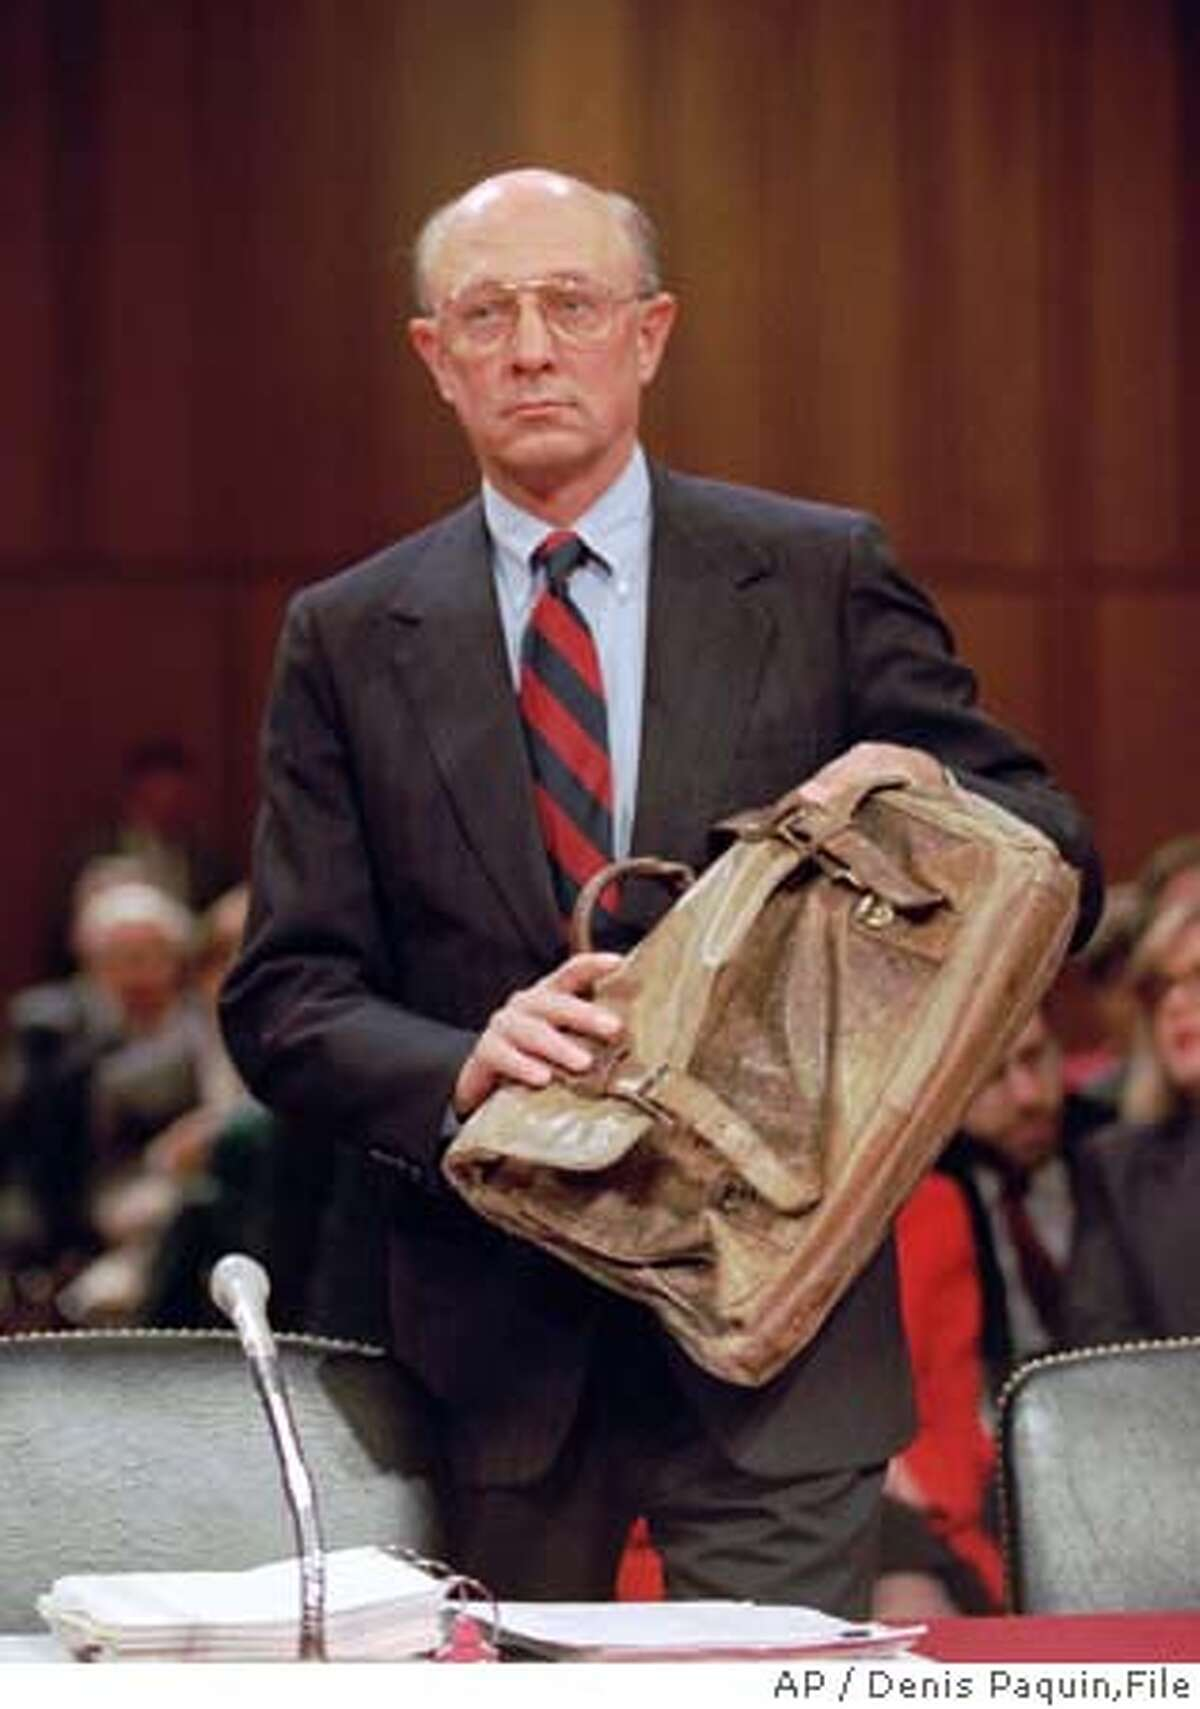 Outgoing CIA Director R. James Woolsey arrives on Capitol Hill Tuesday, Jan. 10, 1995, to testify before the Senate Intelligence Committee. Woolsey, on his final day as CIA director, told the committee Tuesday he could not assure the American people that the agency could avoid another spy scandal like the Aldrich Ames case. (AP Photo/Denis Paquin) ALSO RAN: 5/29/97 CAT